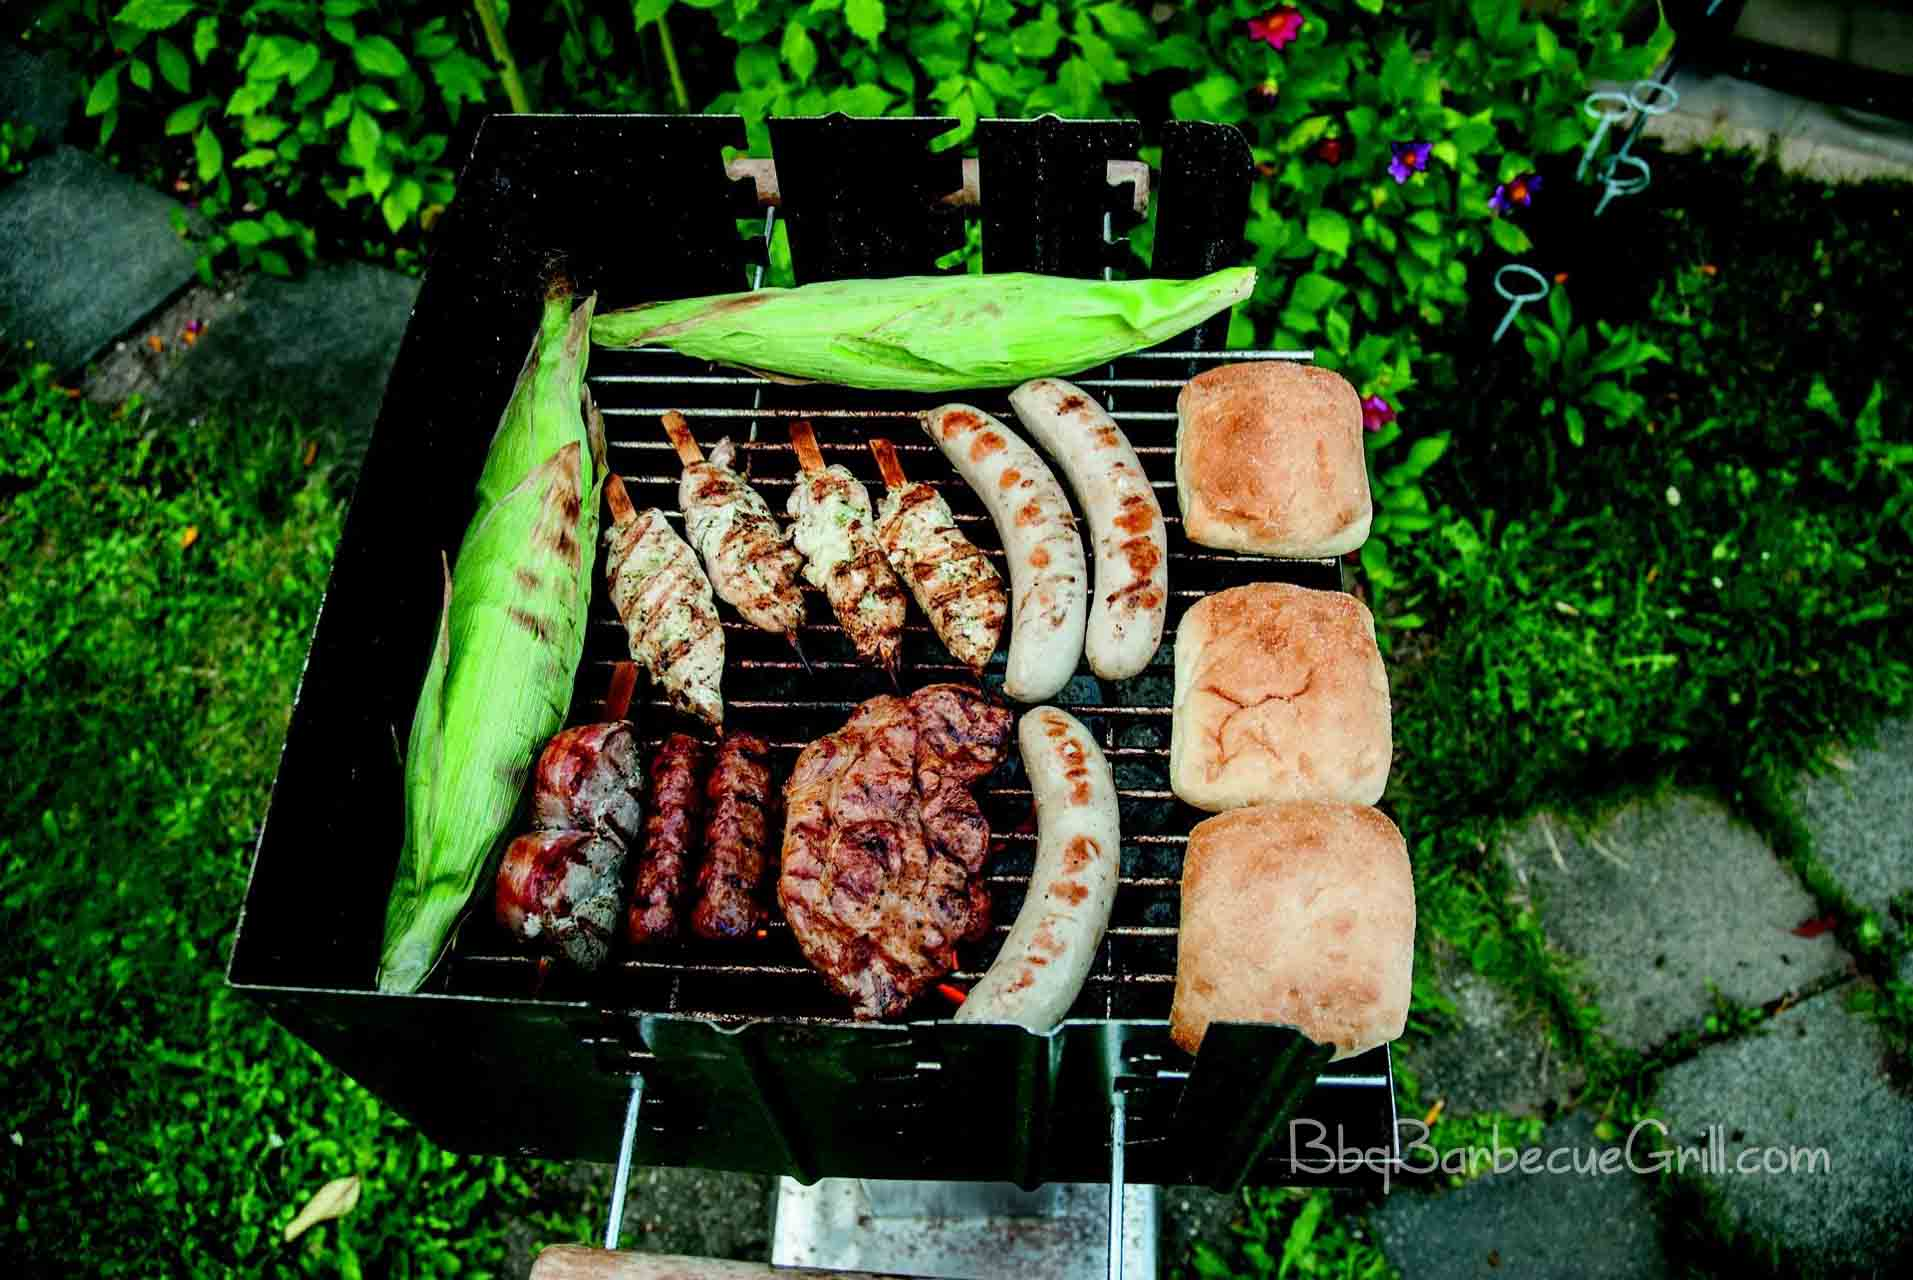 Health benefits of grilling food 2